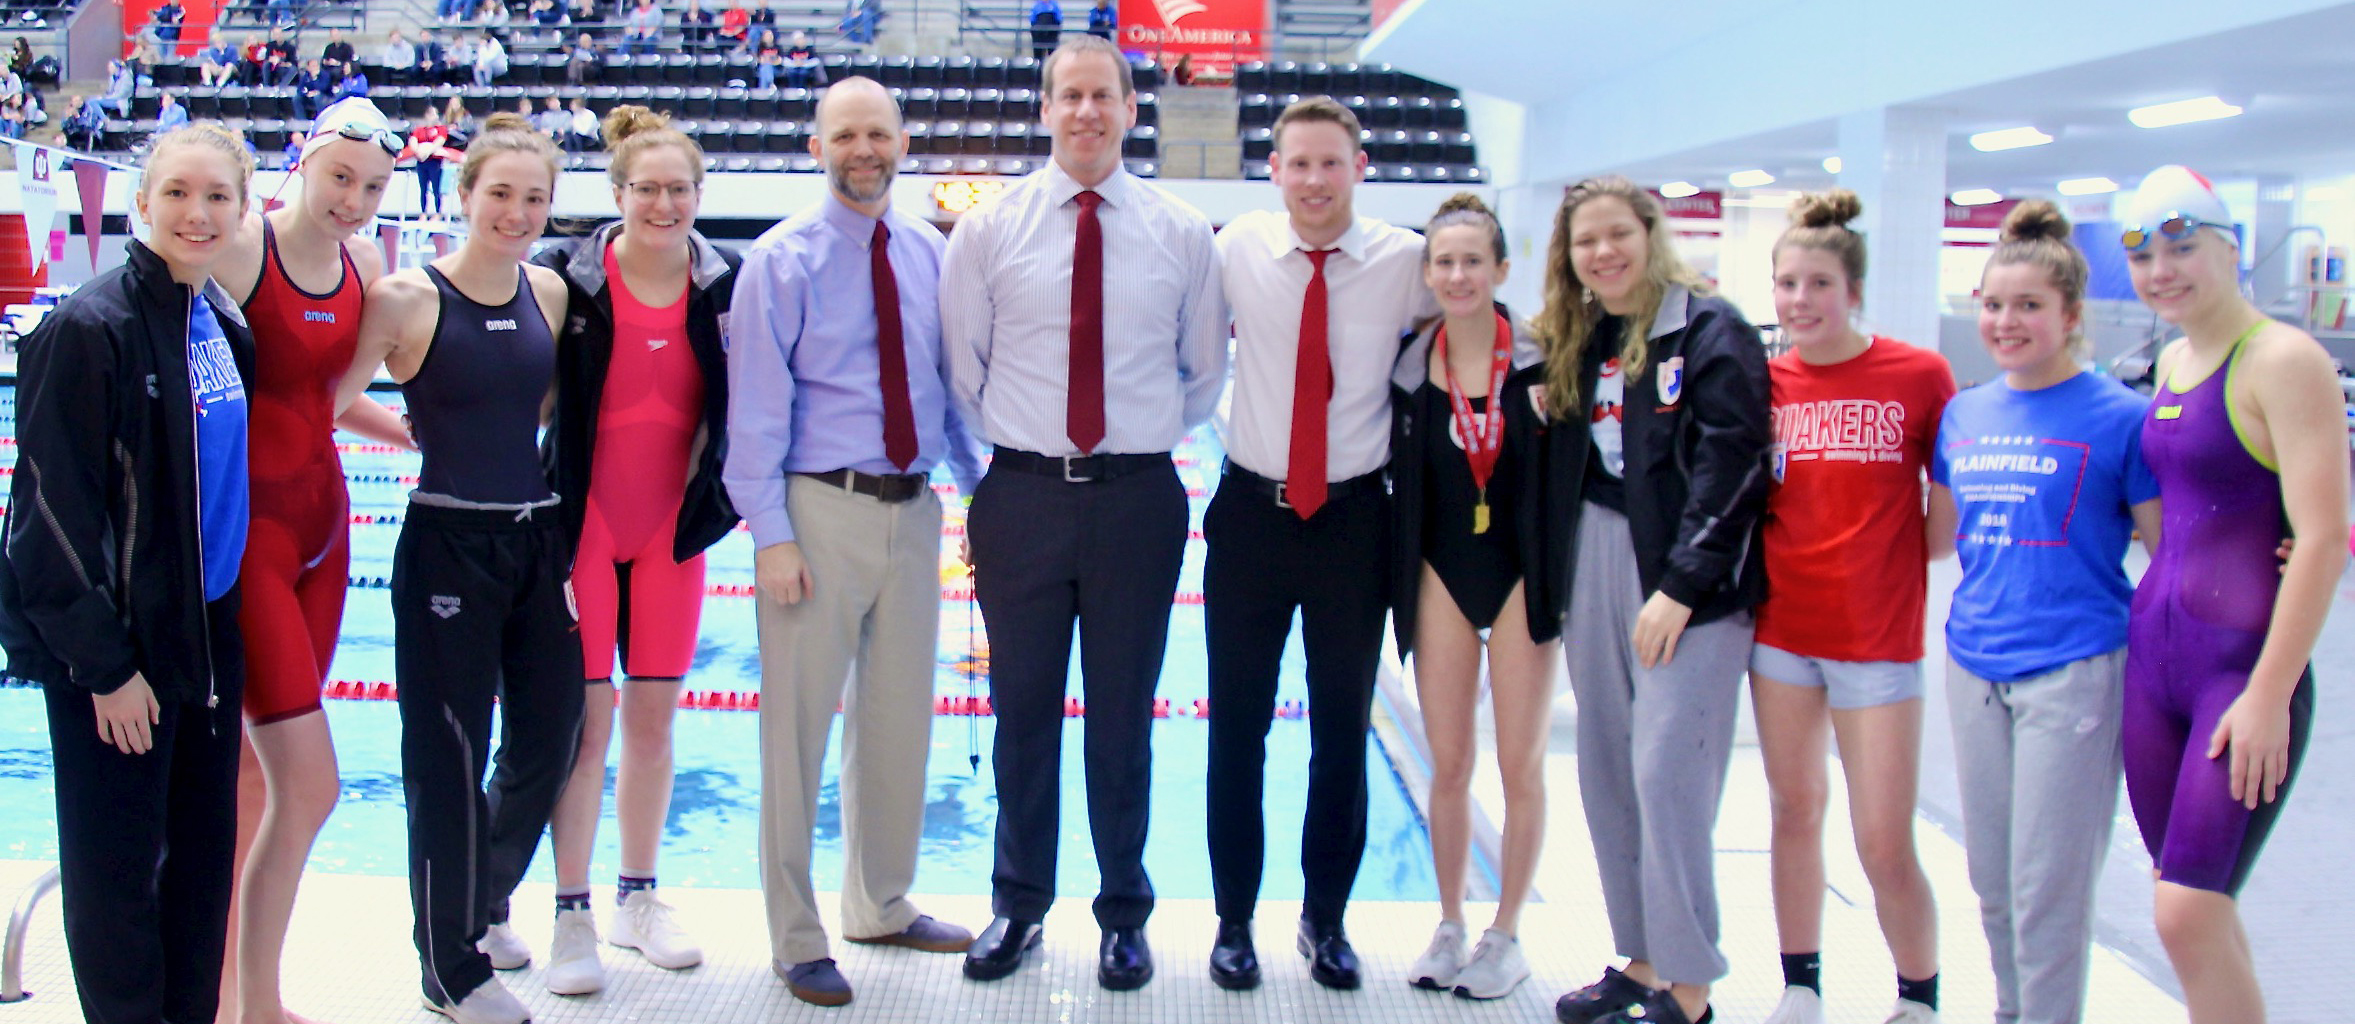 Student-athletes and coaches at the IHSAA Girls State Swim & Dive Meet